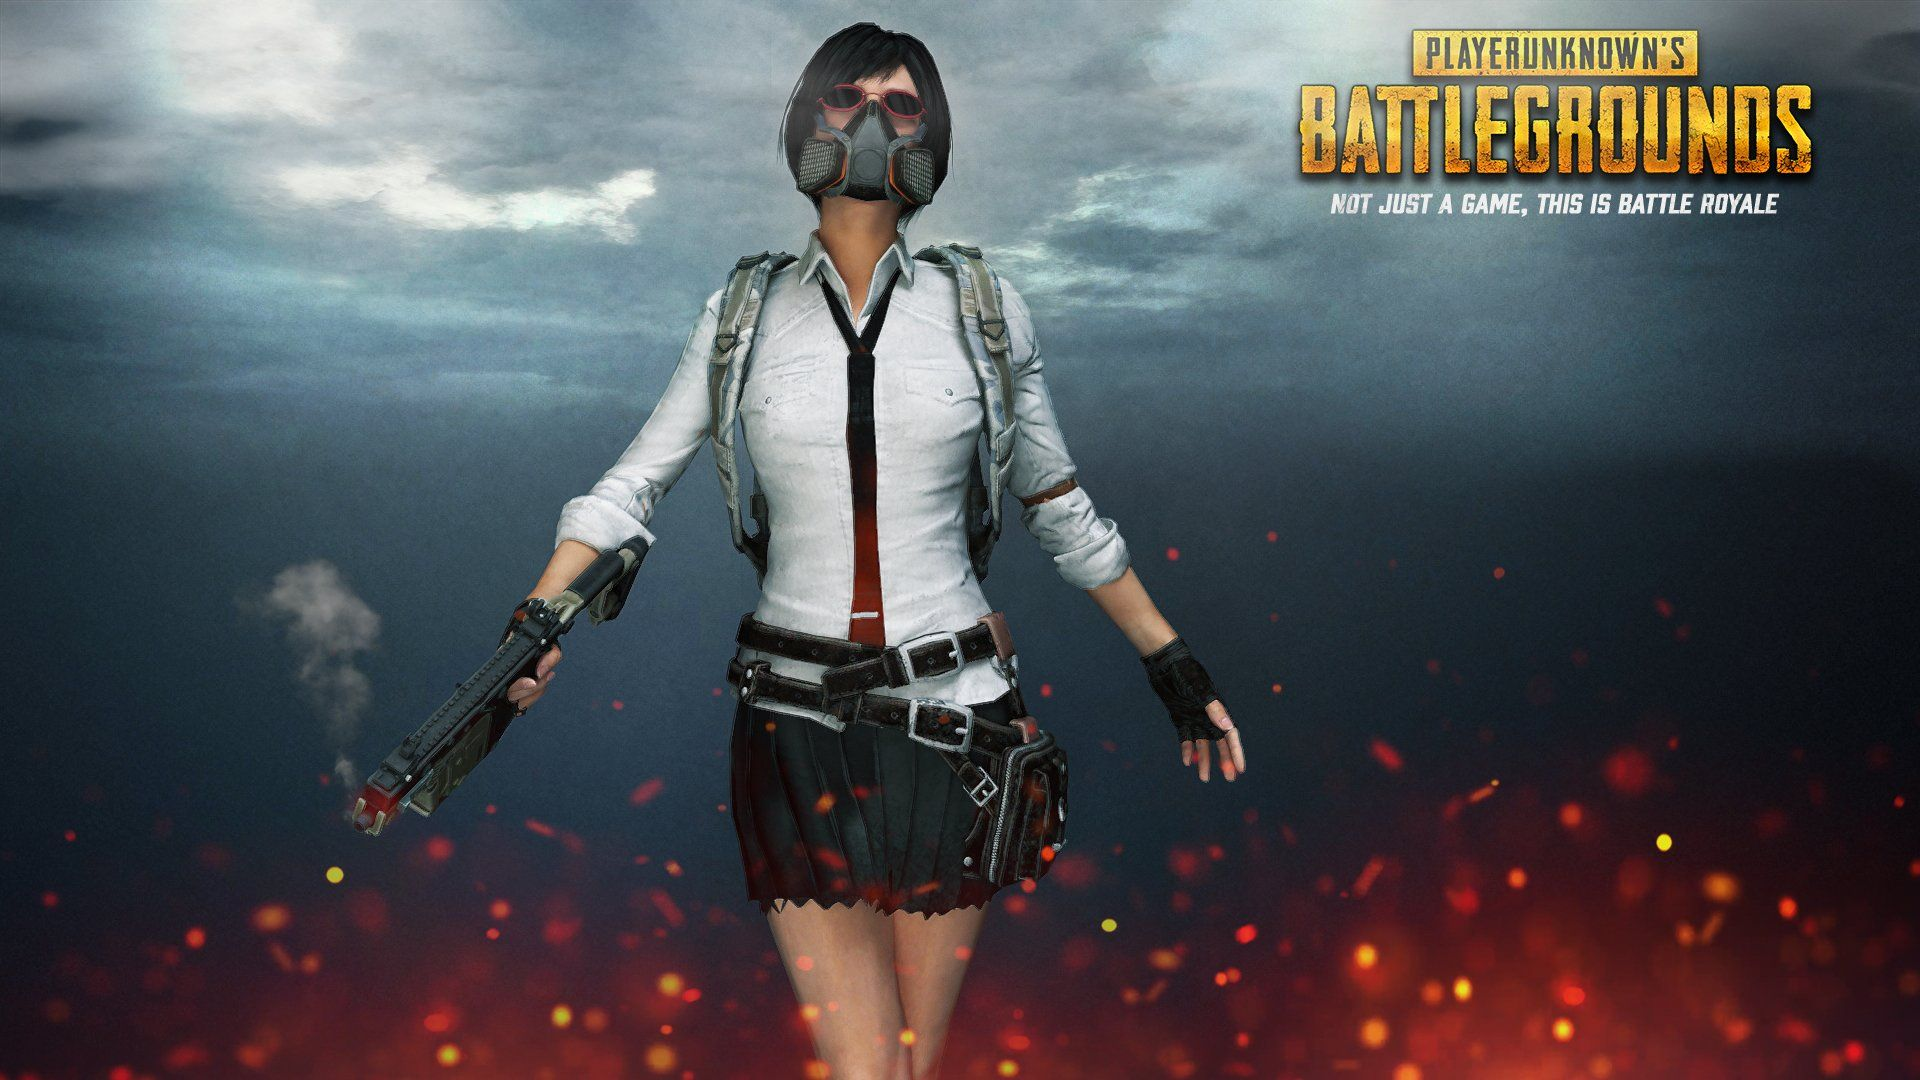 Pubg Game Hd Wallpaper Download: Video Game PlayerUnknown's Battlegrounds Wallpaper